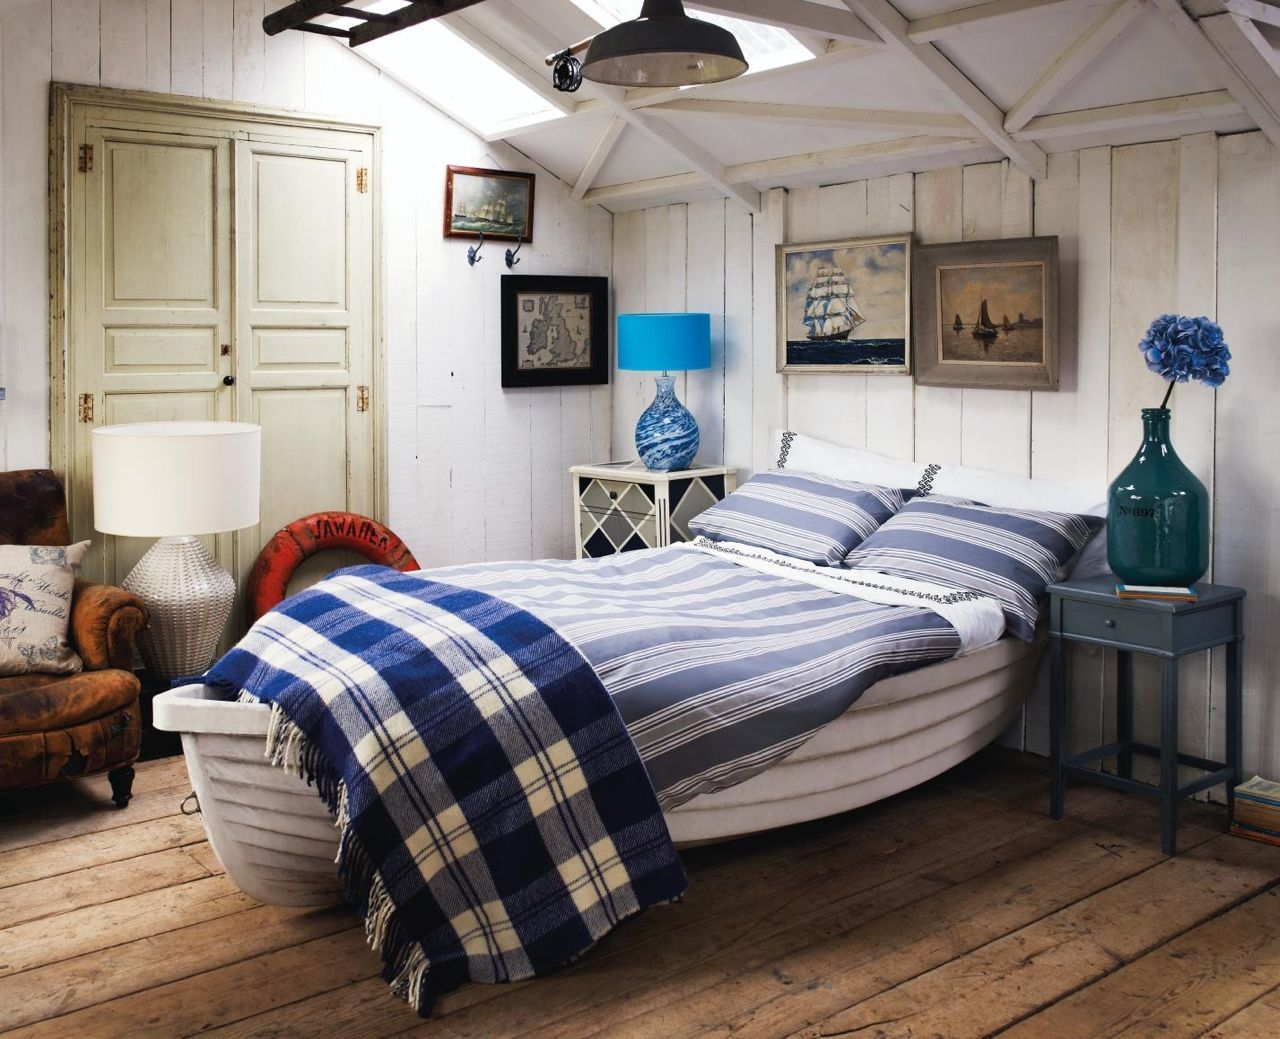 Bedroom, Domination Ship Bed Also Wood Sloping Ceiling Plus Wood Floor  Present Real Ship Bedroom ~ Inspiring Nautical Bedroom Decor Ideas For Sea  Lovers